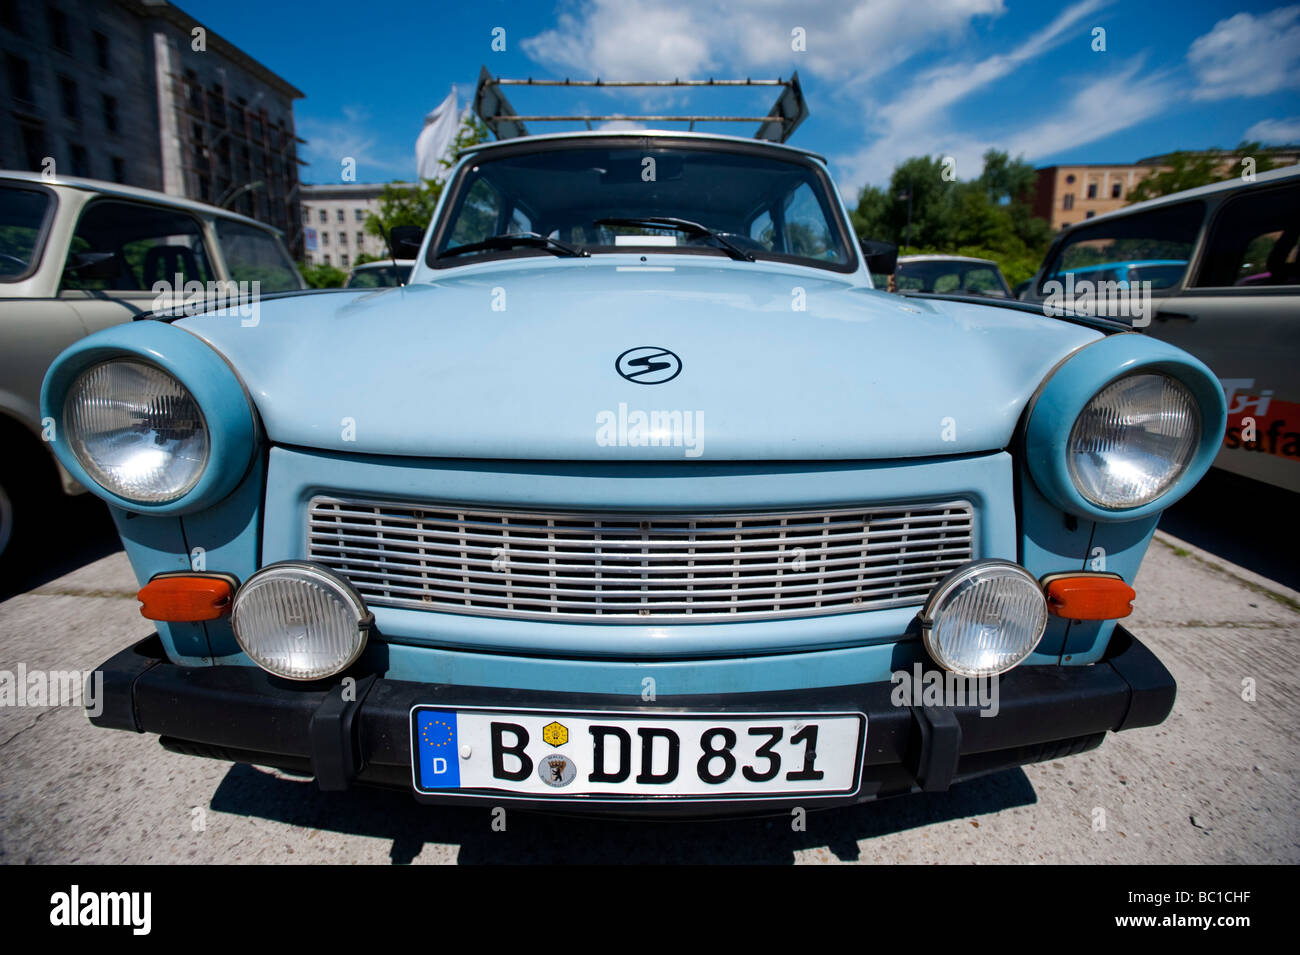 Old East German Trabant cars parked in Berlin Germany - Stock Image